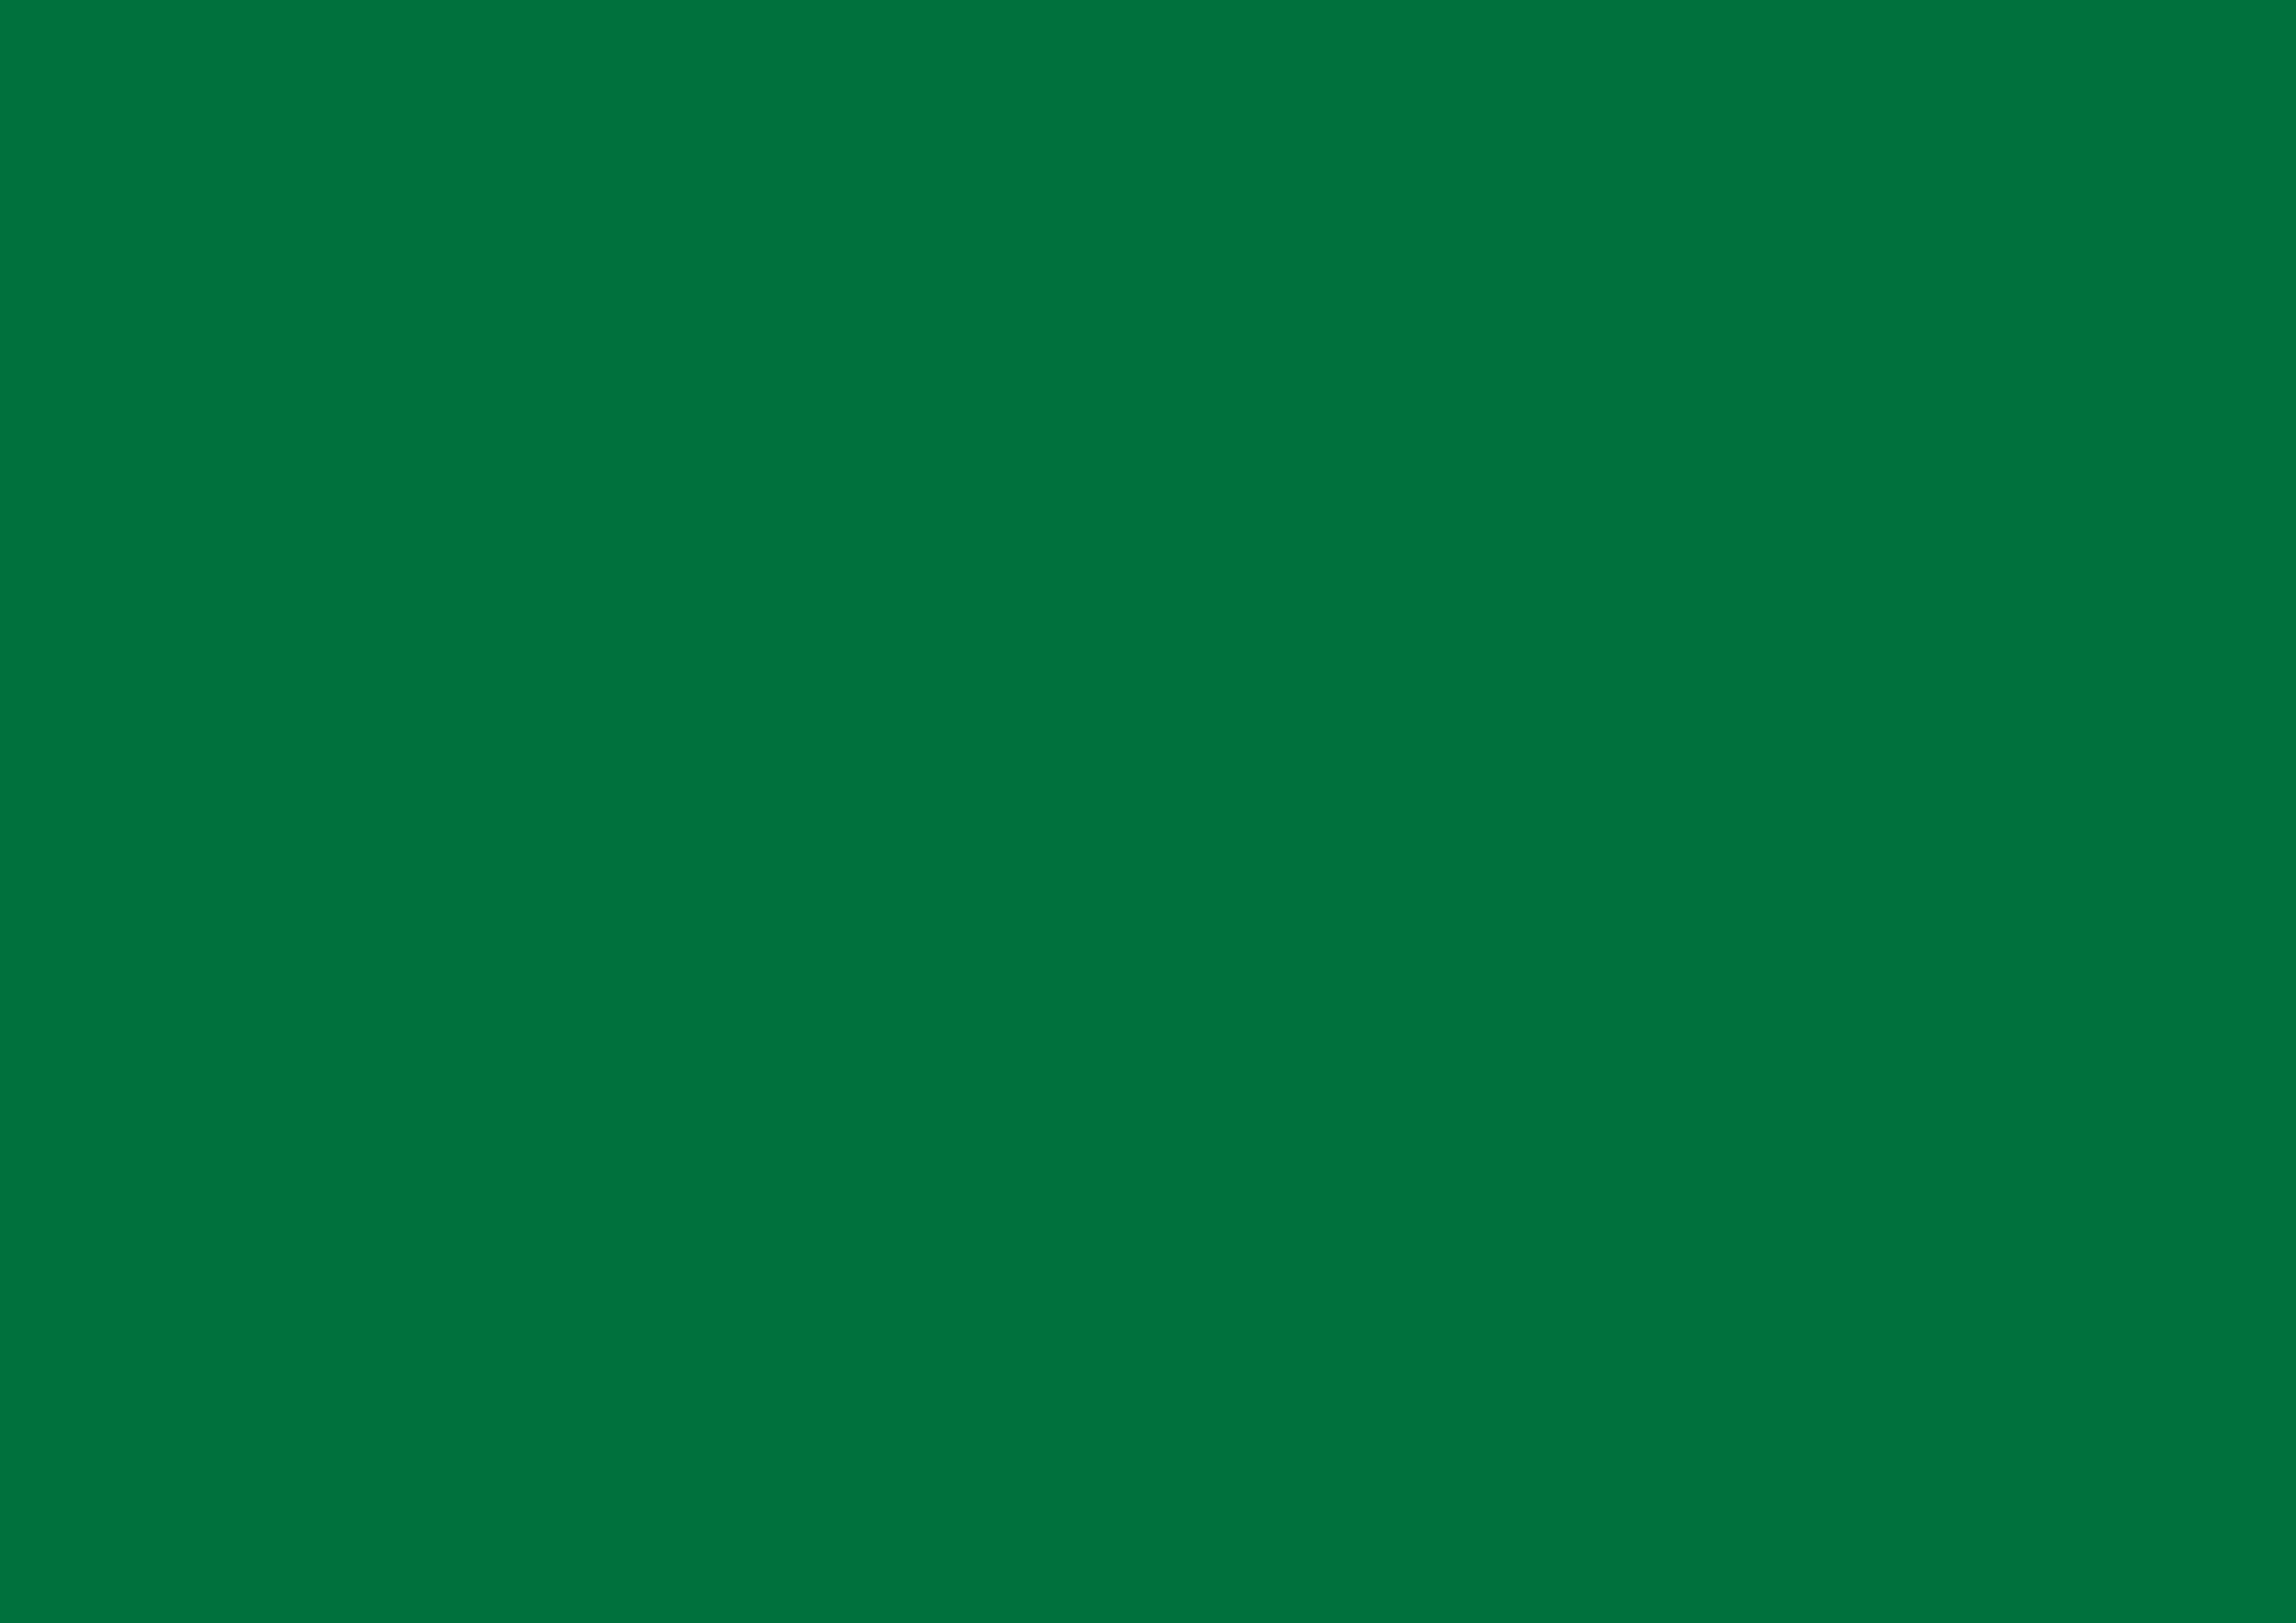 3508x2480 Dartmouth Green Solid Color Background